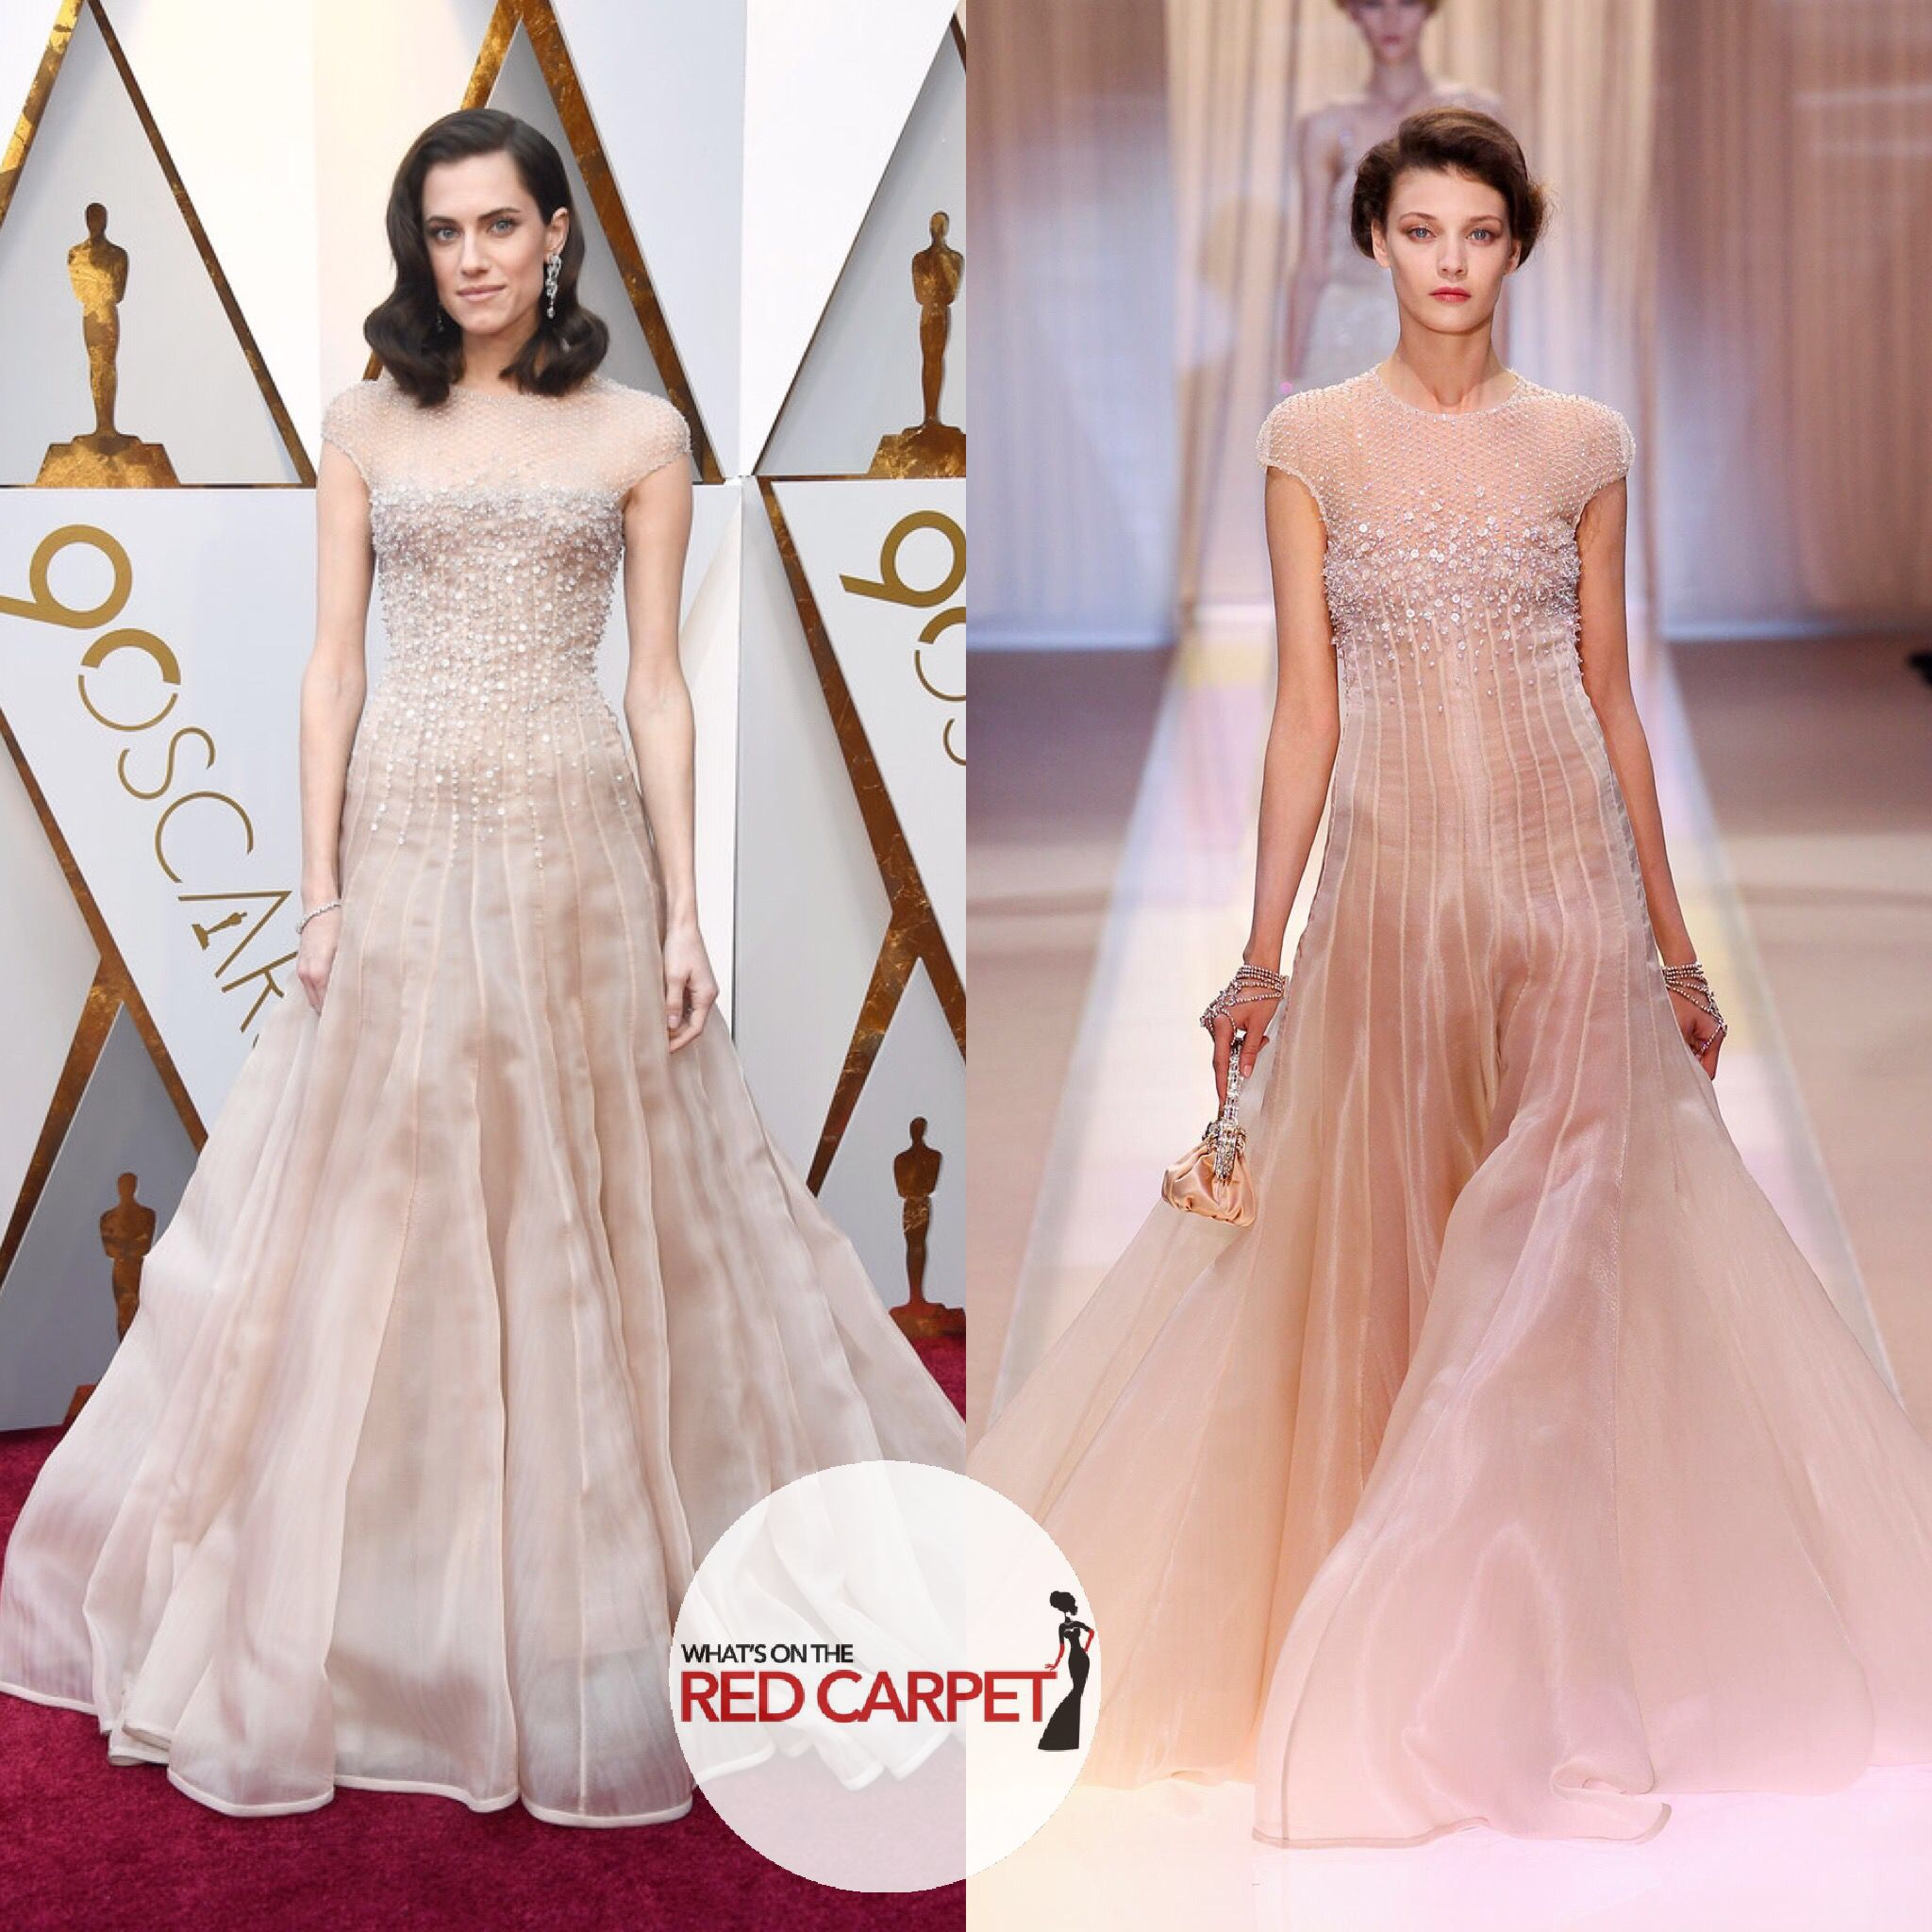 Allison Williams wears Armani Privé 2013 Couture to the 2018 Oscars 90th Annual Academy Awards fashion style red carpet